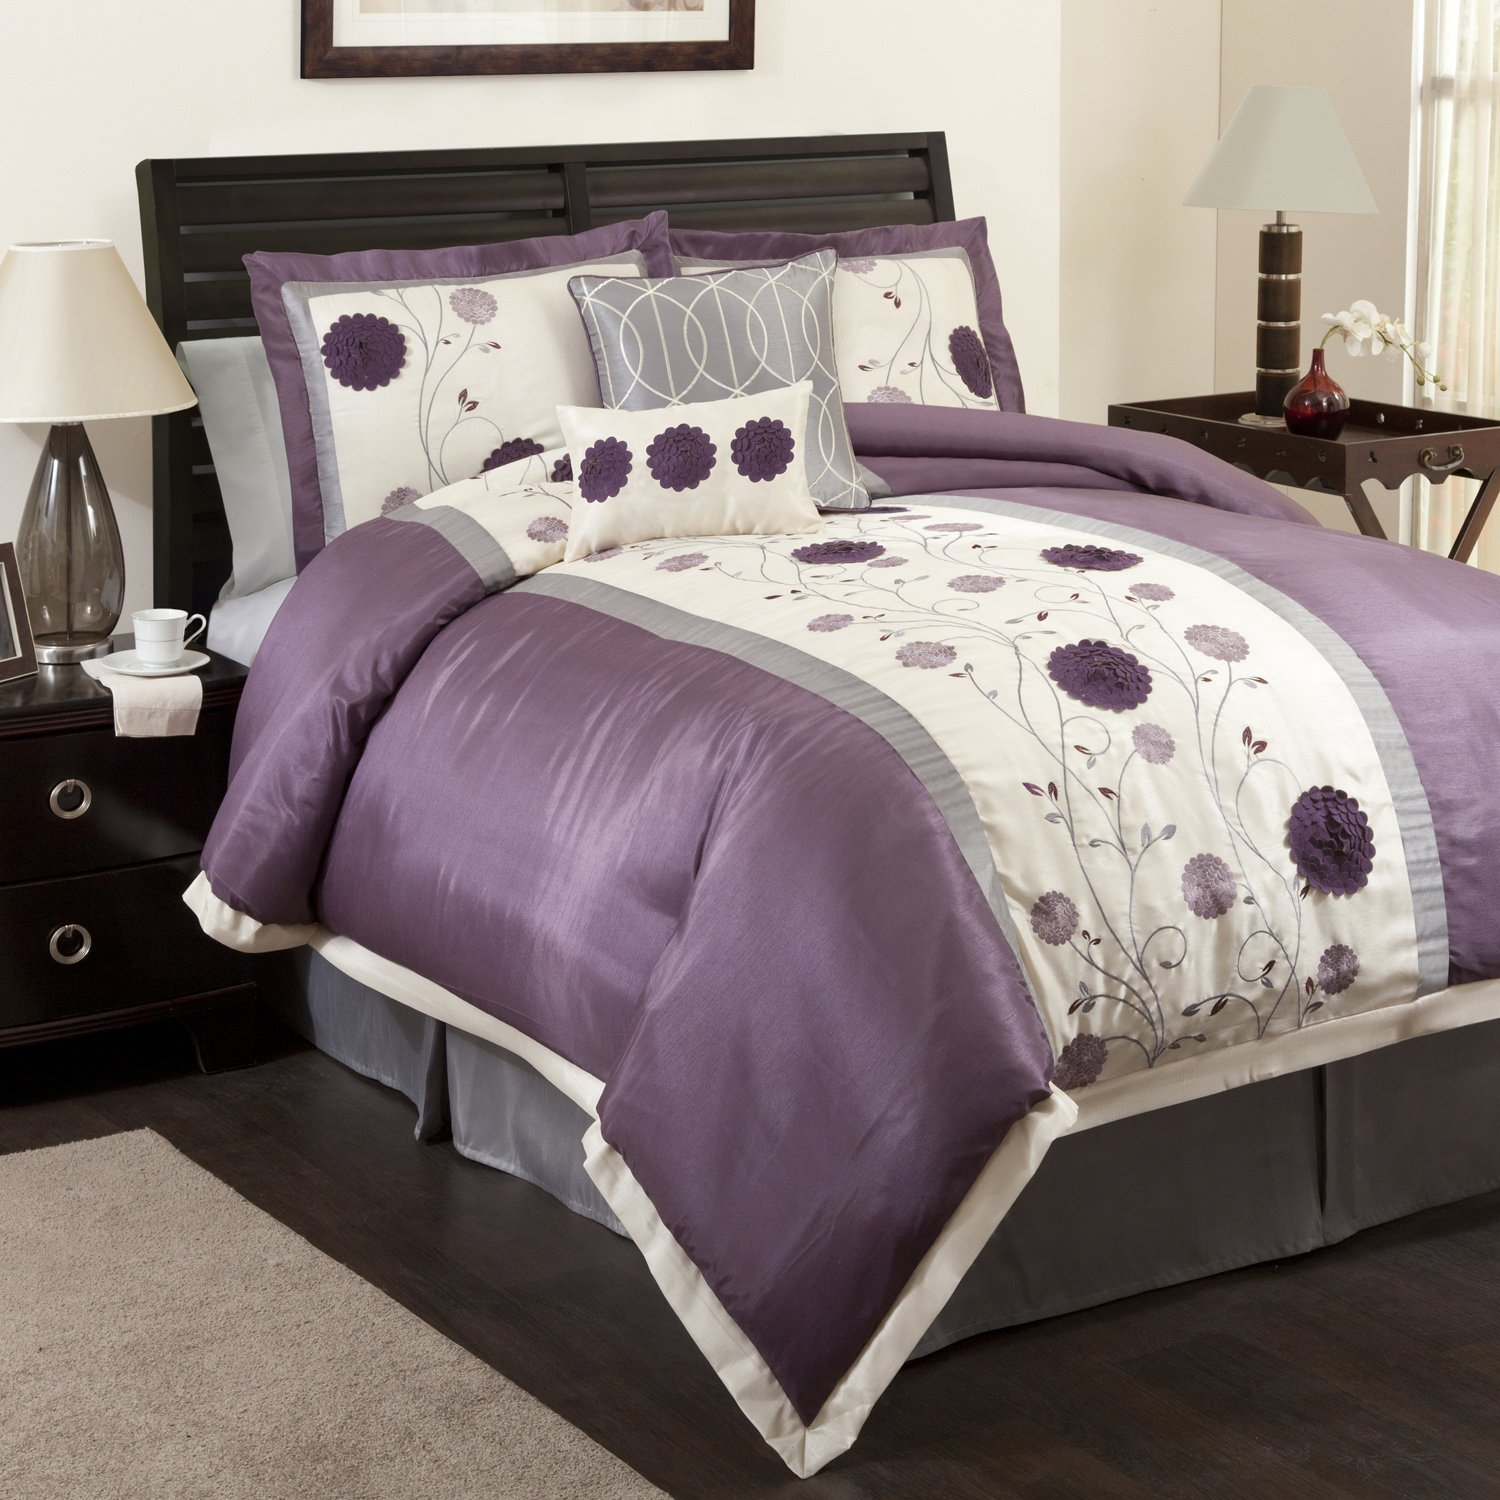 Kohls Bedding Sets Queen | Walmart Queen Bedding Sets | Queen Bedding Sets